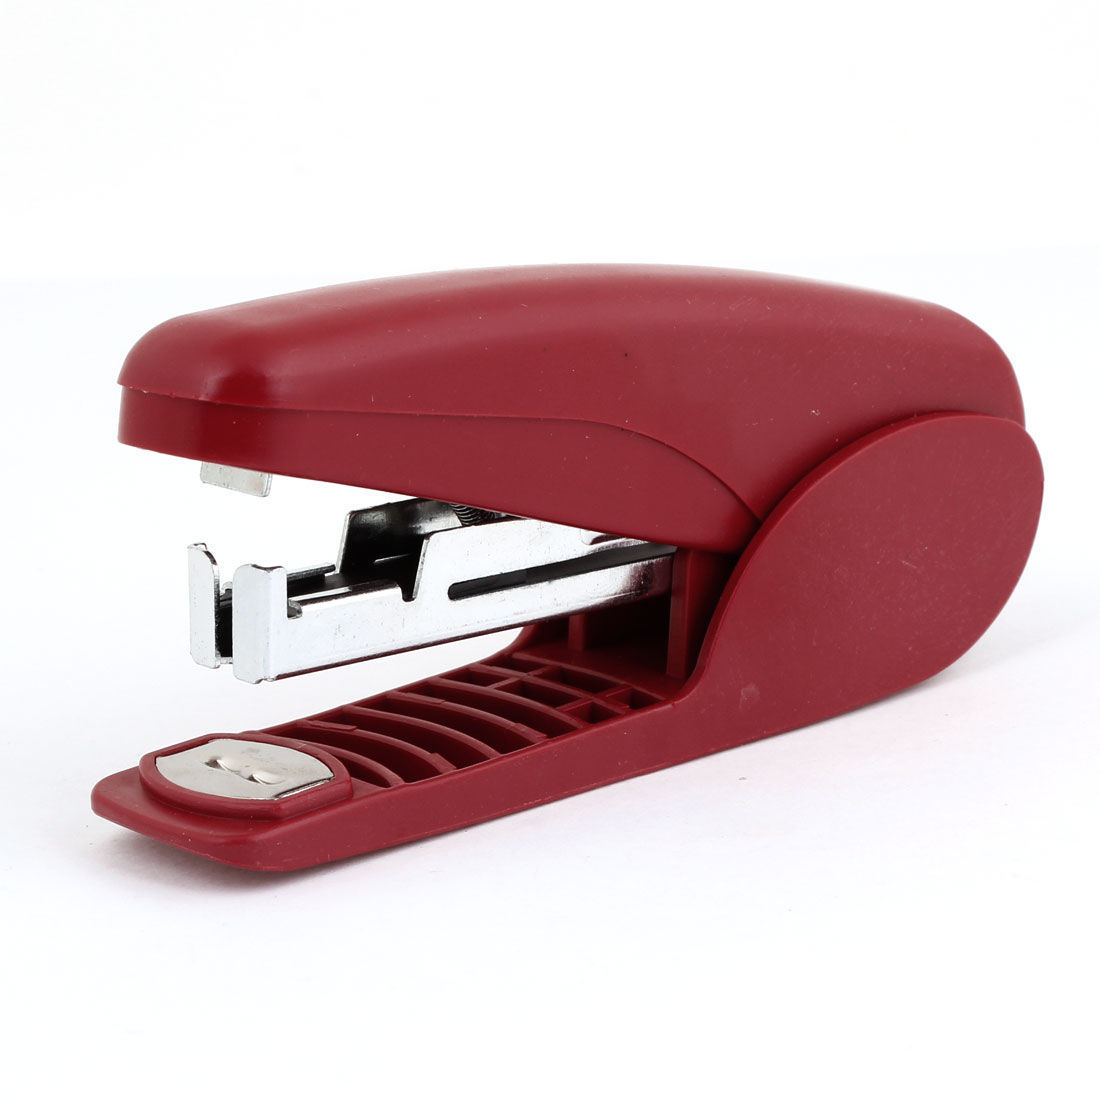 Mini Portable Plastic Office Stationery Desk Stapler Red Silver Tone